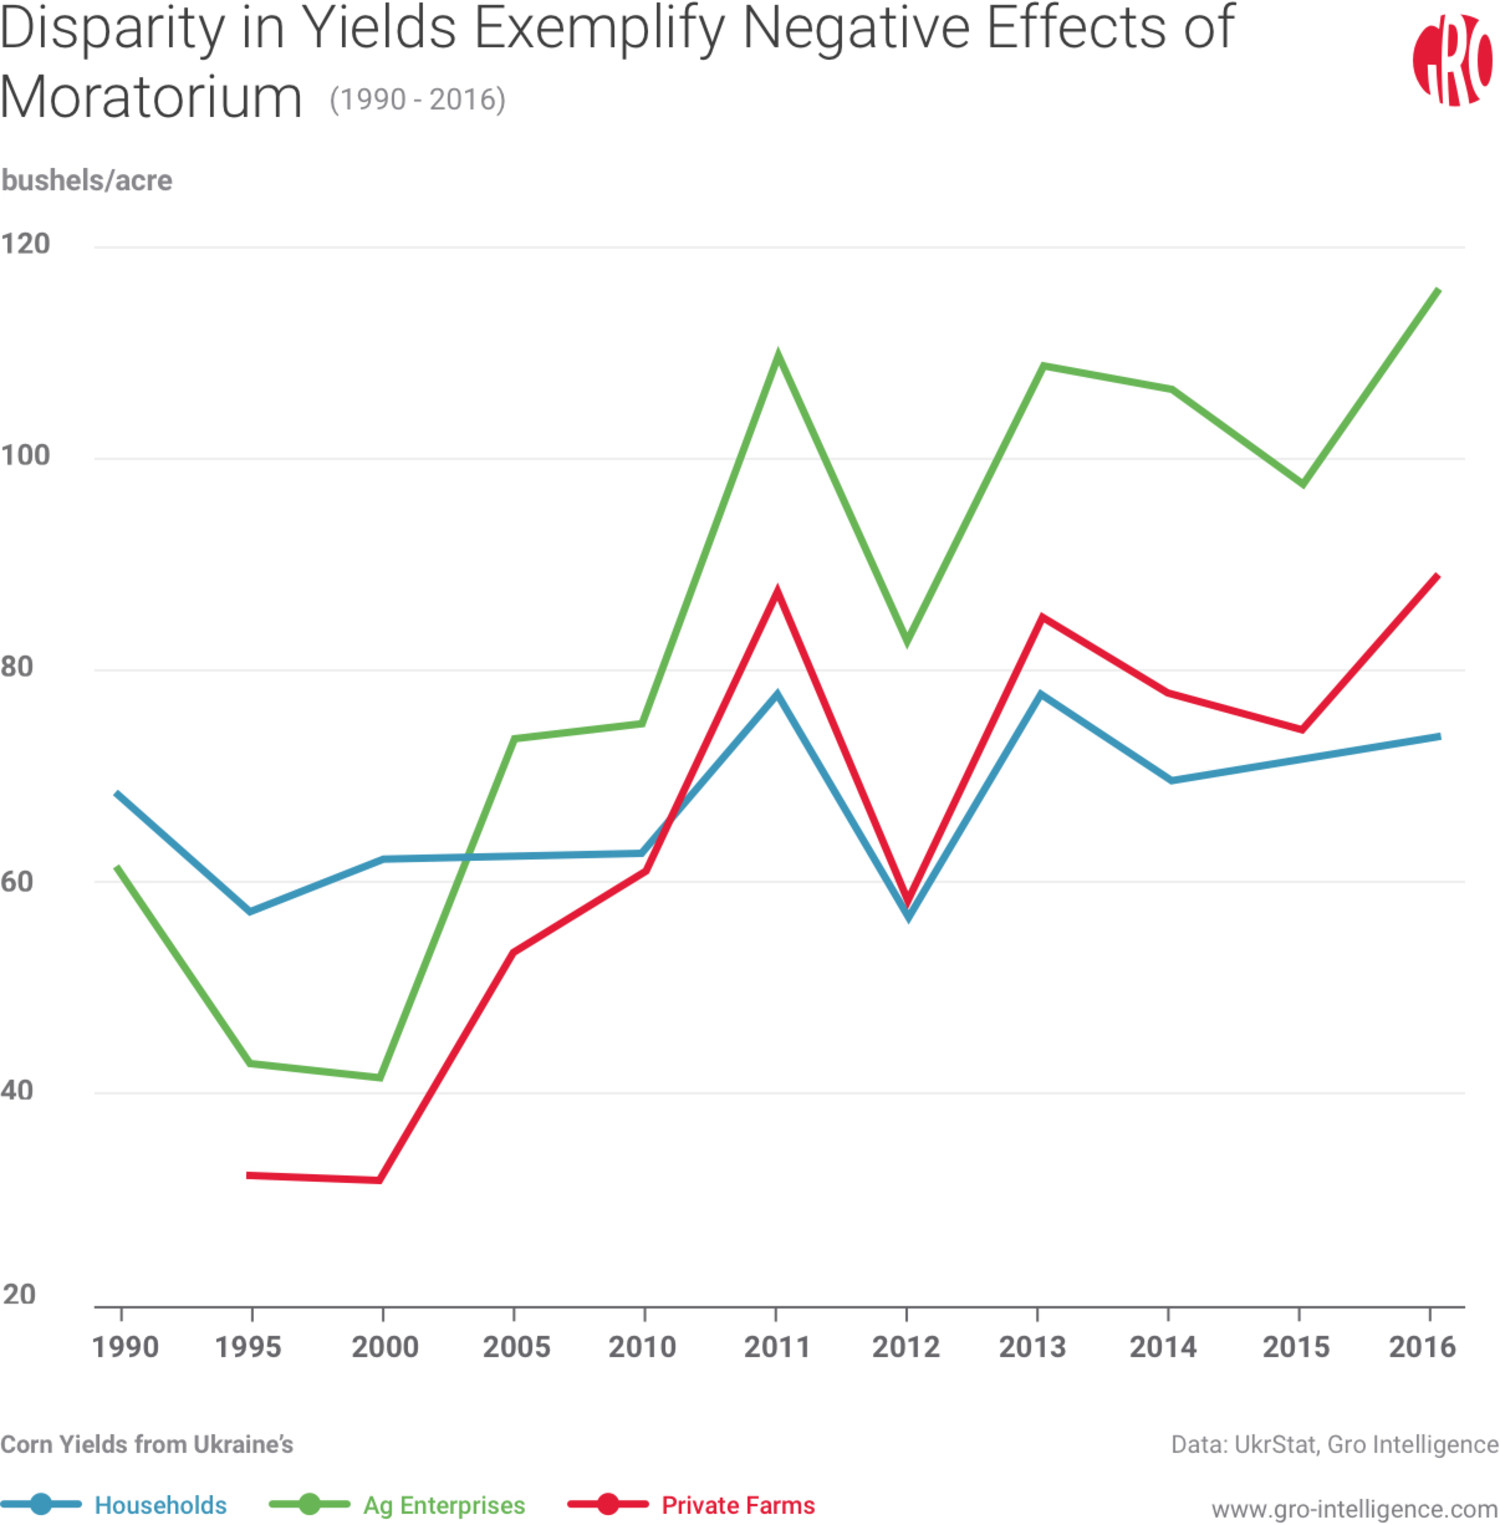 Disparity in Yields Exemplify Negative Effects of Moratorium